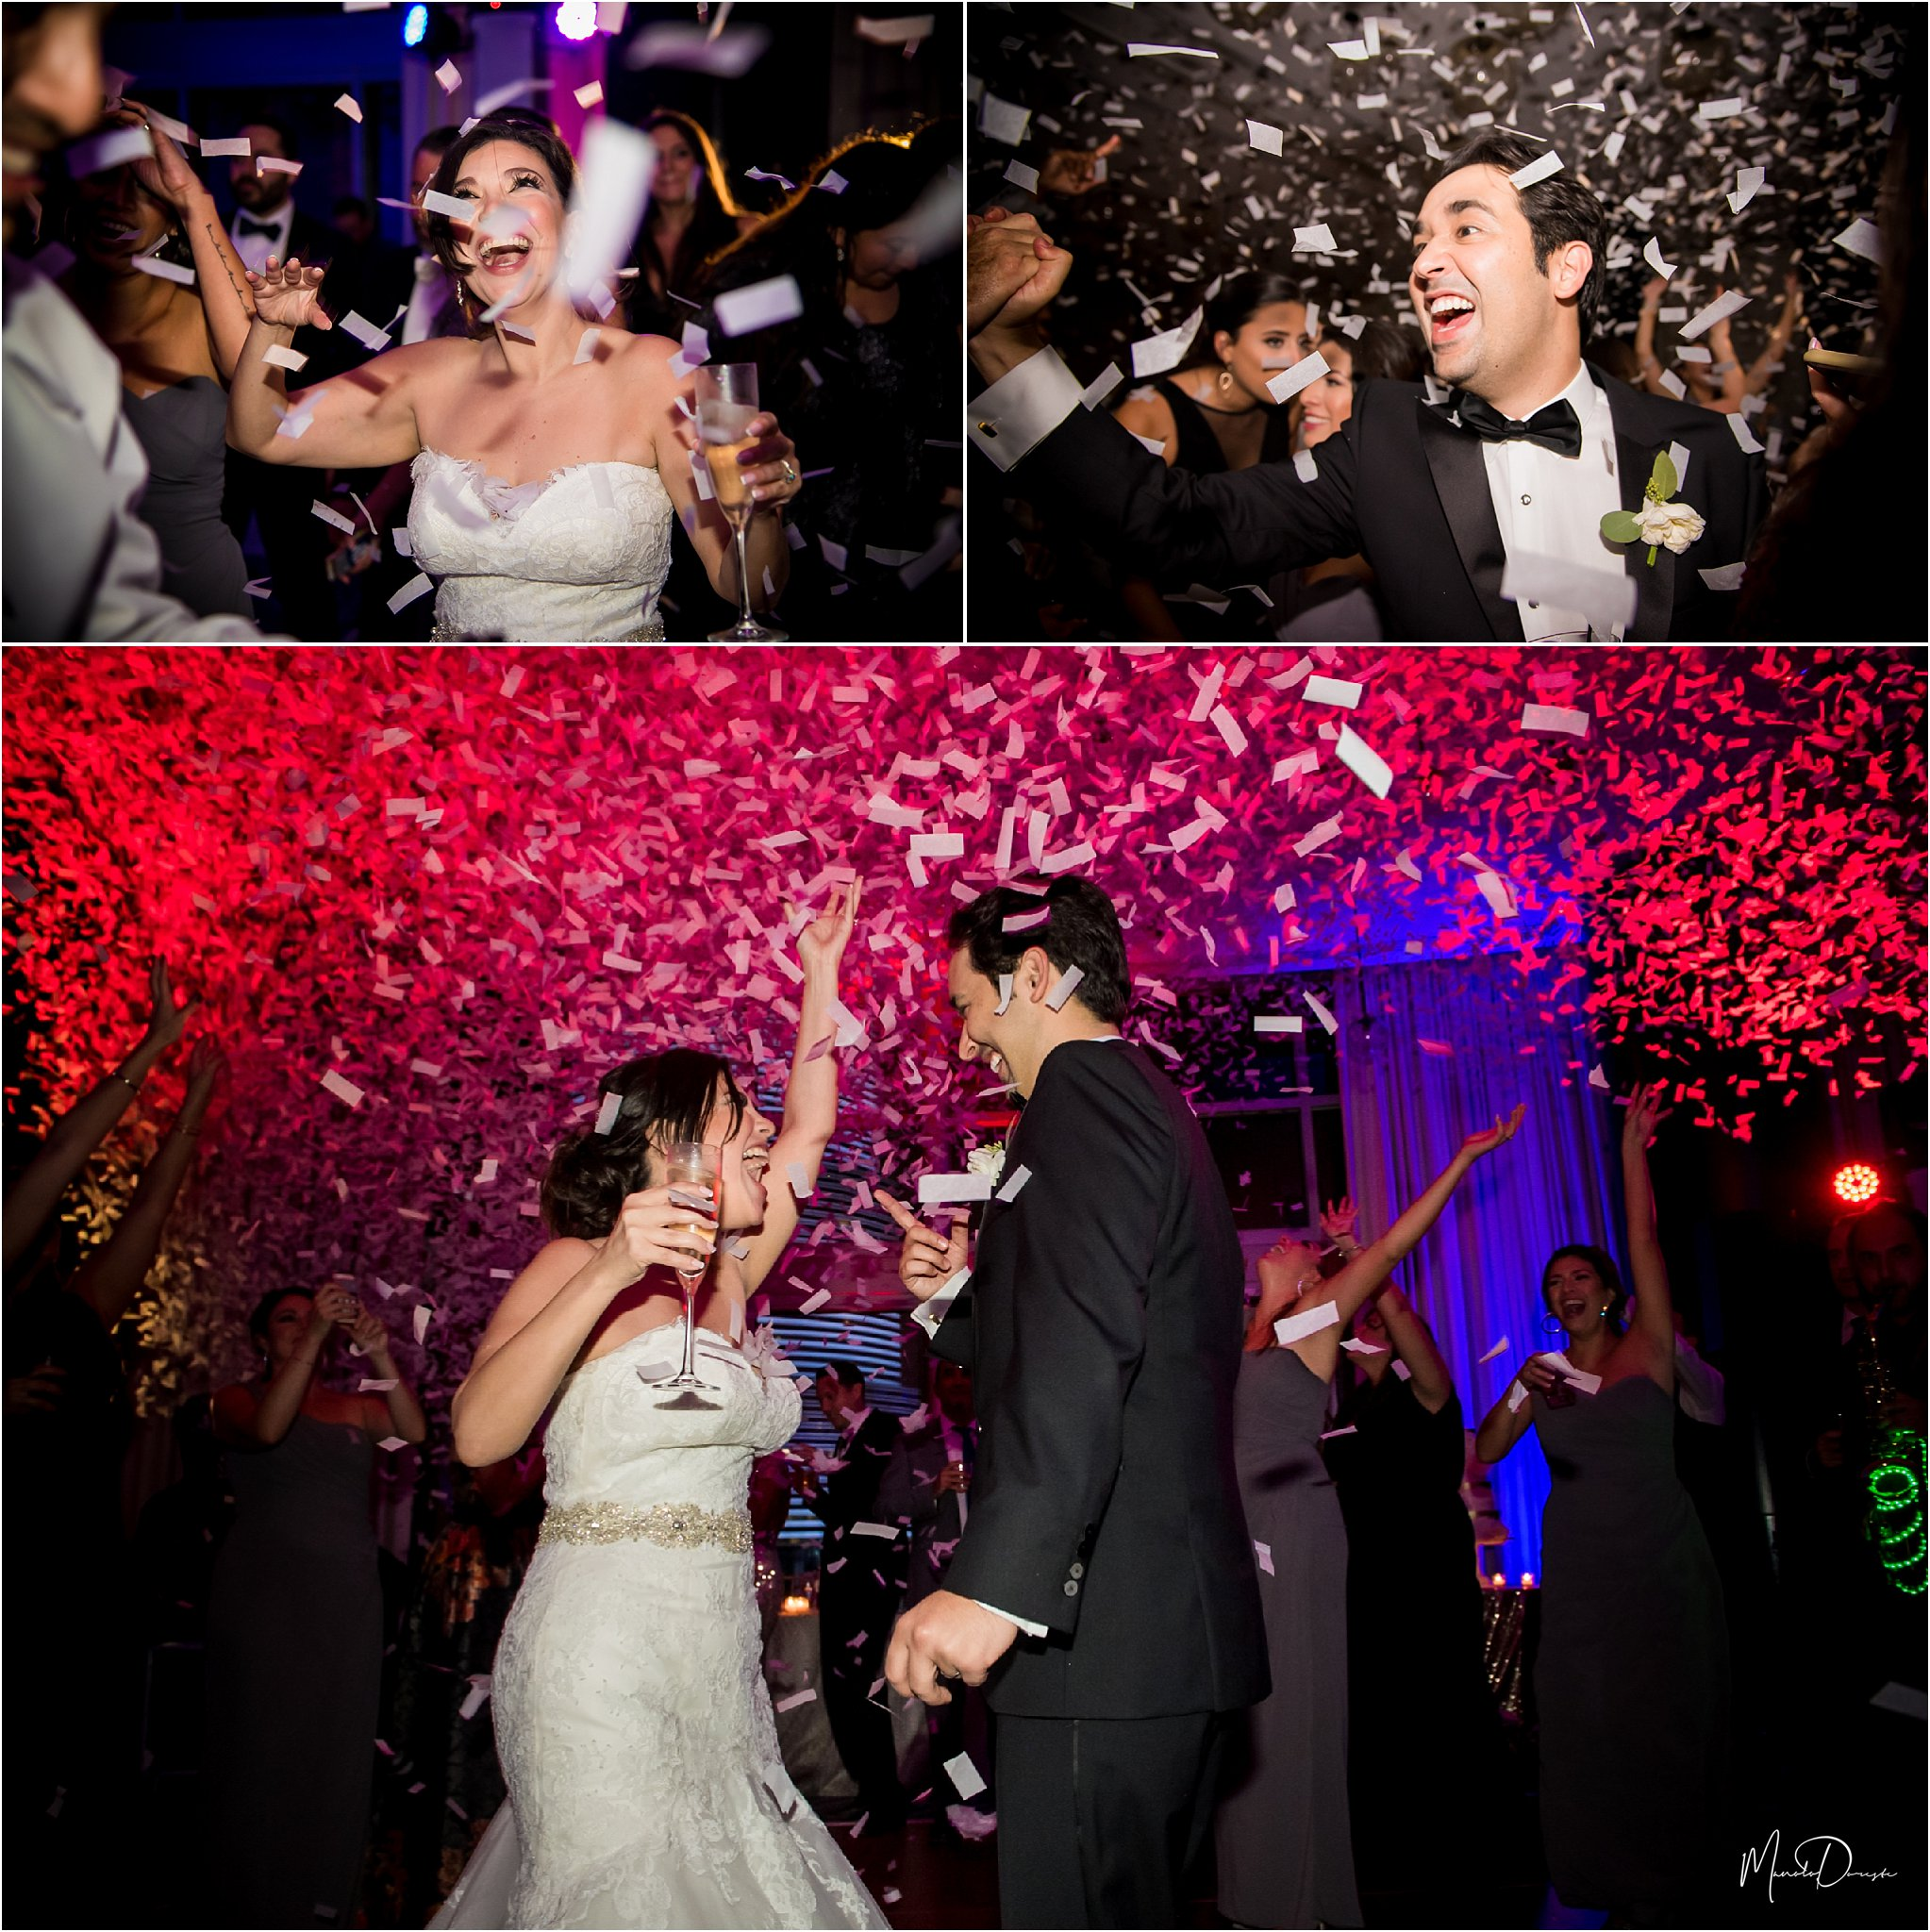 0100_ManoloDoreste_InFocusStudios_Wedding_Family_Photography_Miami_MiamiPhotographer.jpg